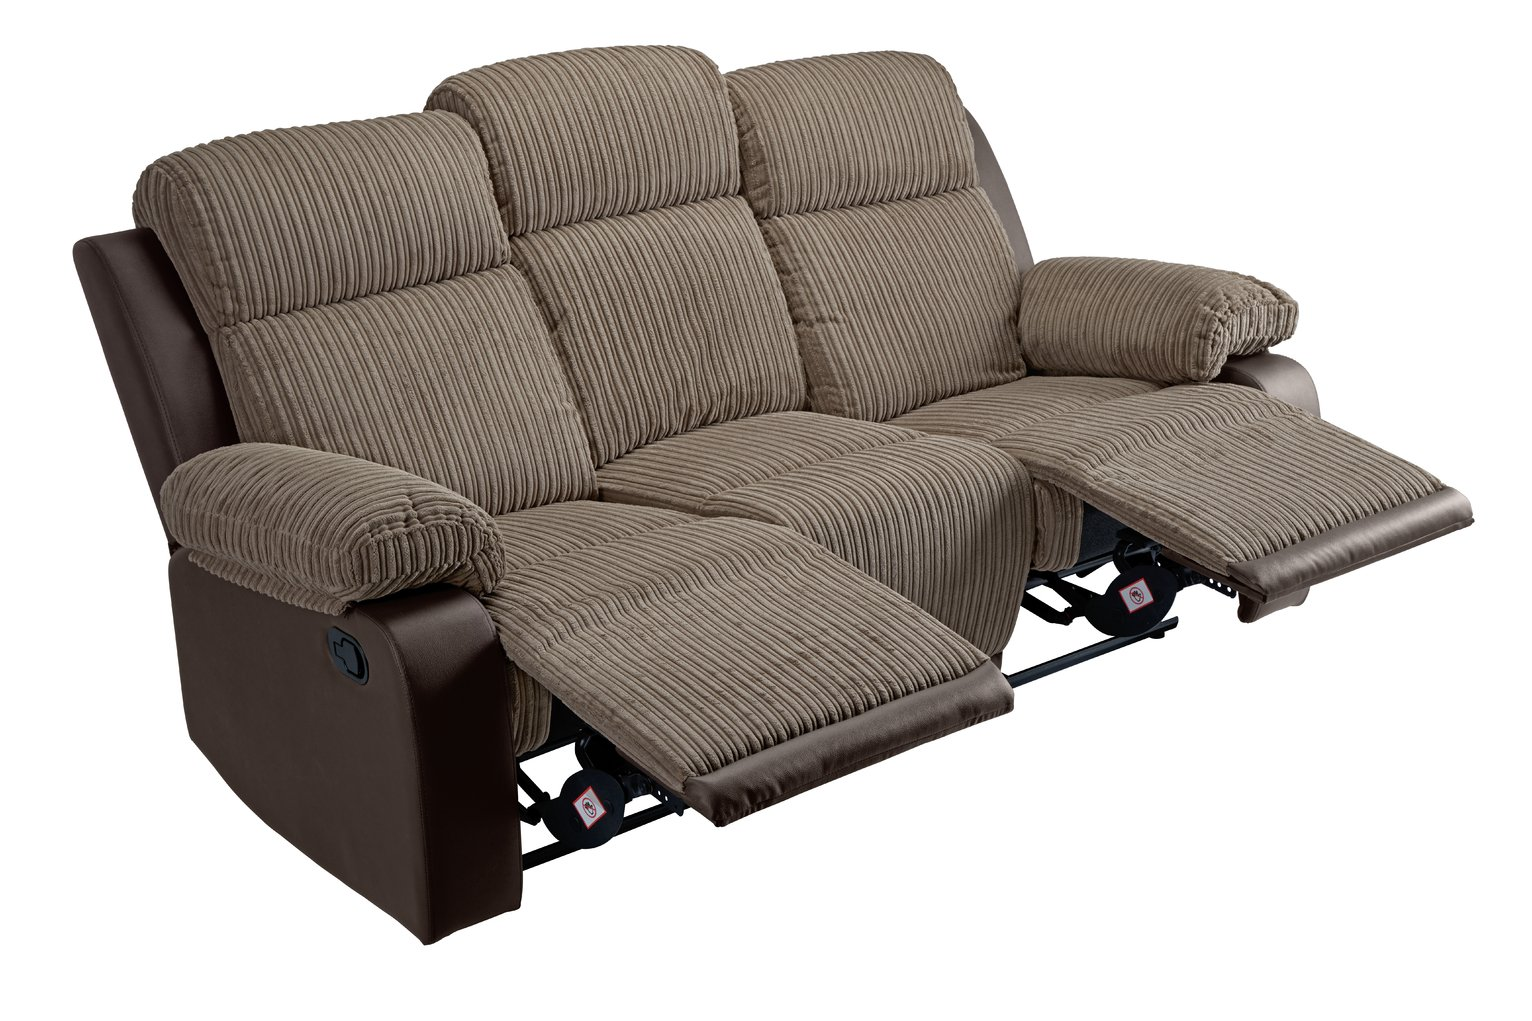 Collection Bradley 3 Seater Manual Recliner Sofa - Natural